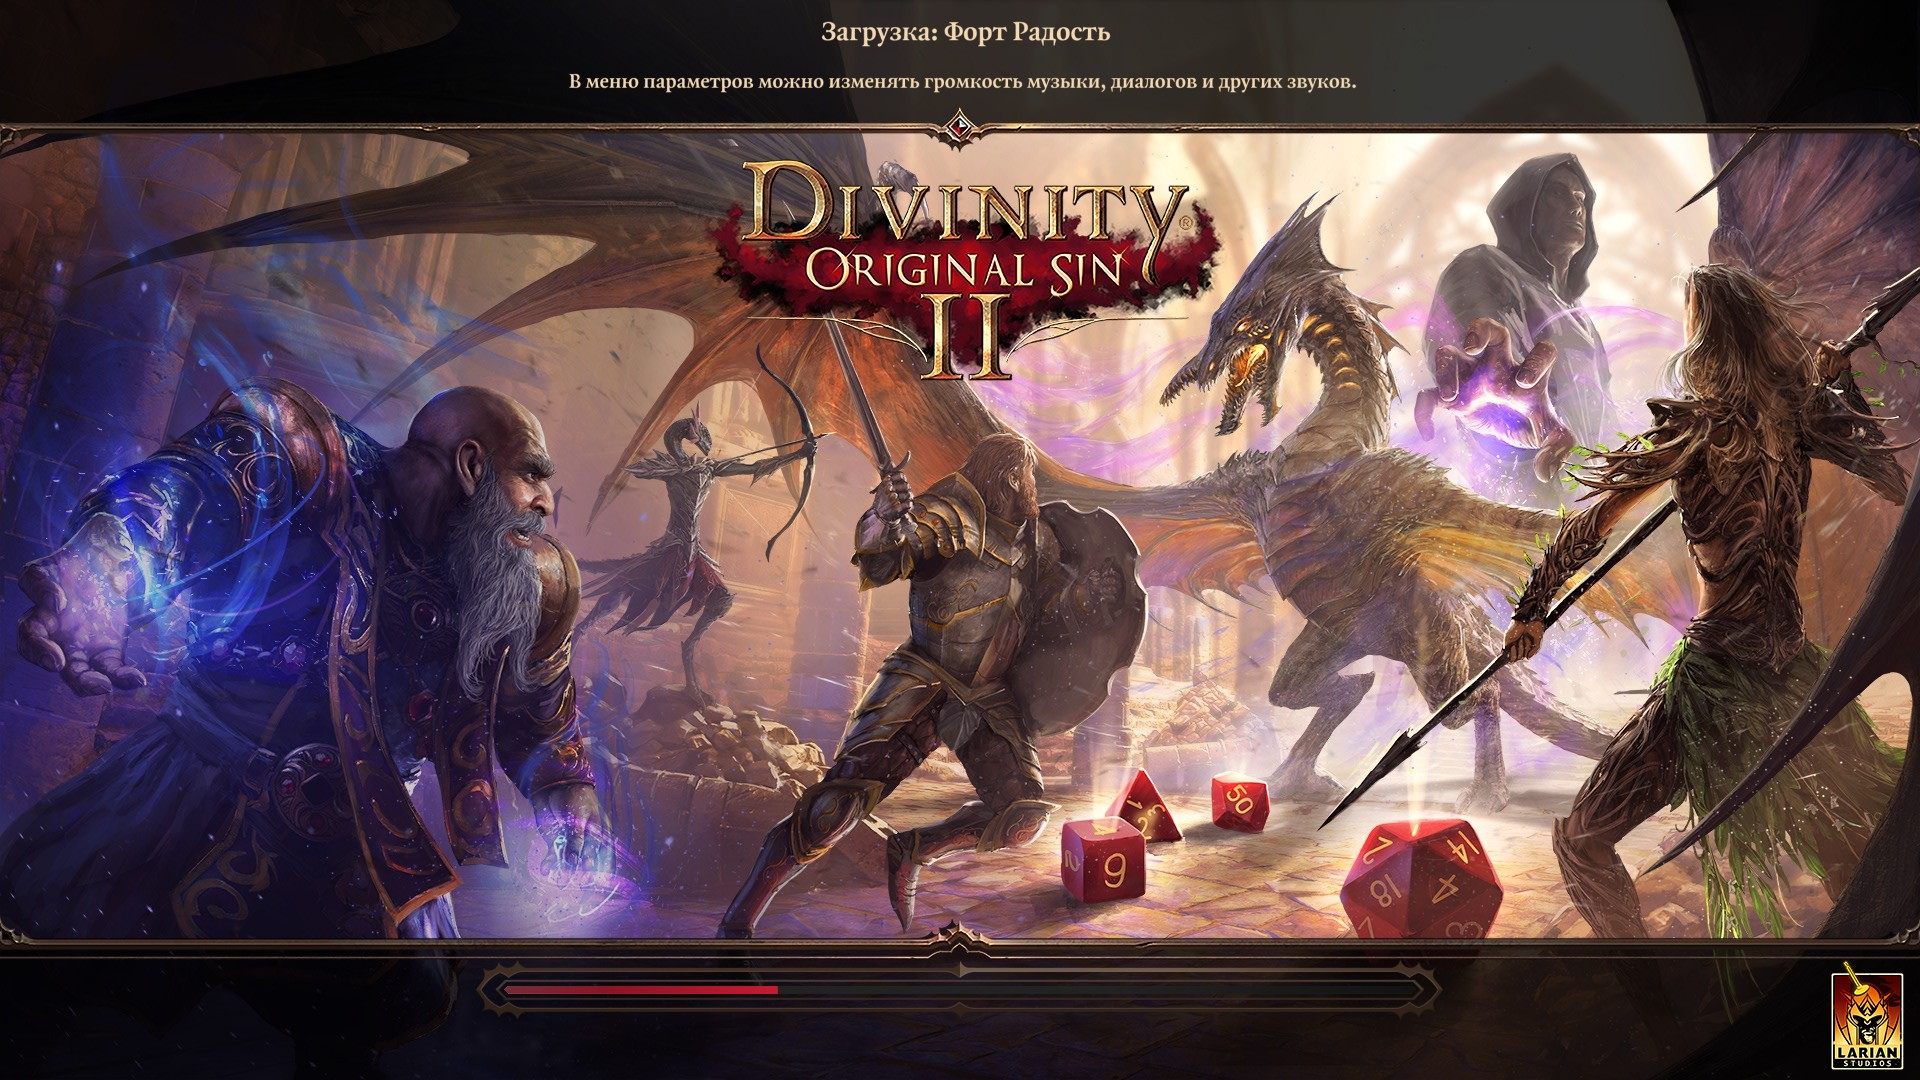 Divinity: Original Sin 2 Fix - Save Game Location, Add Game